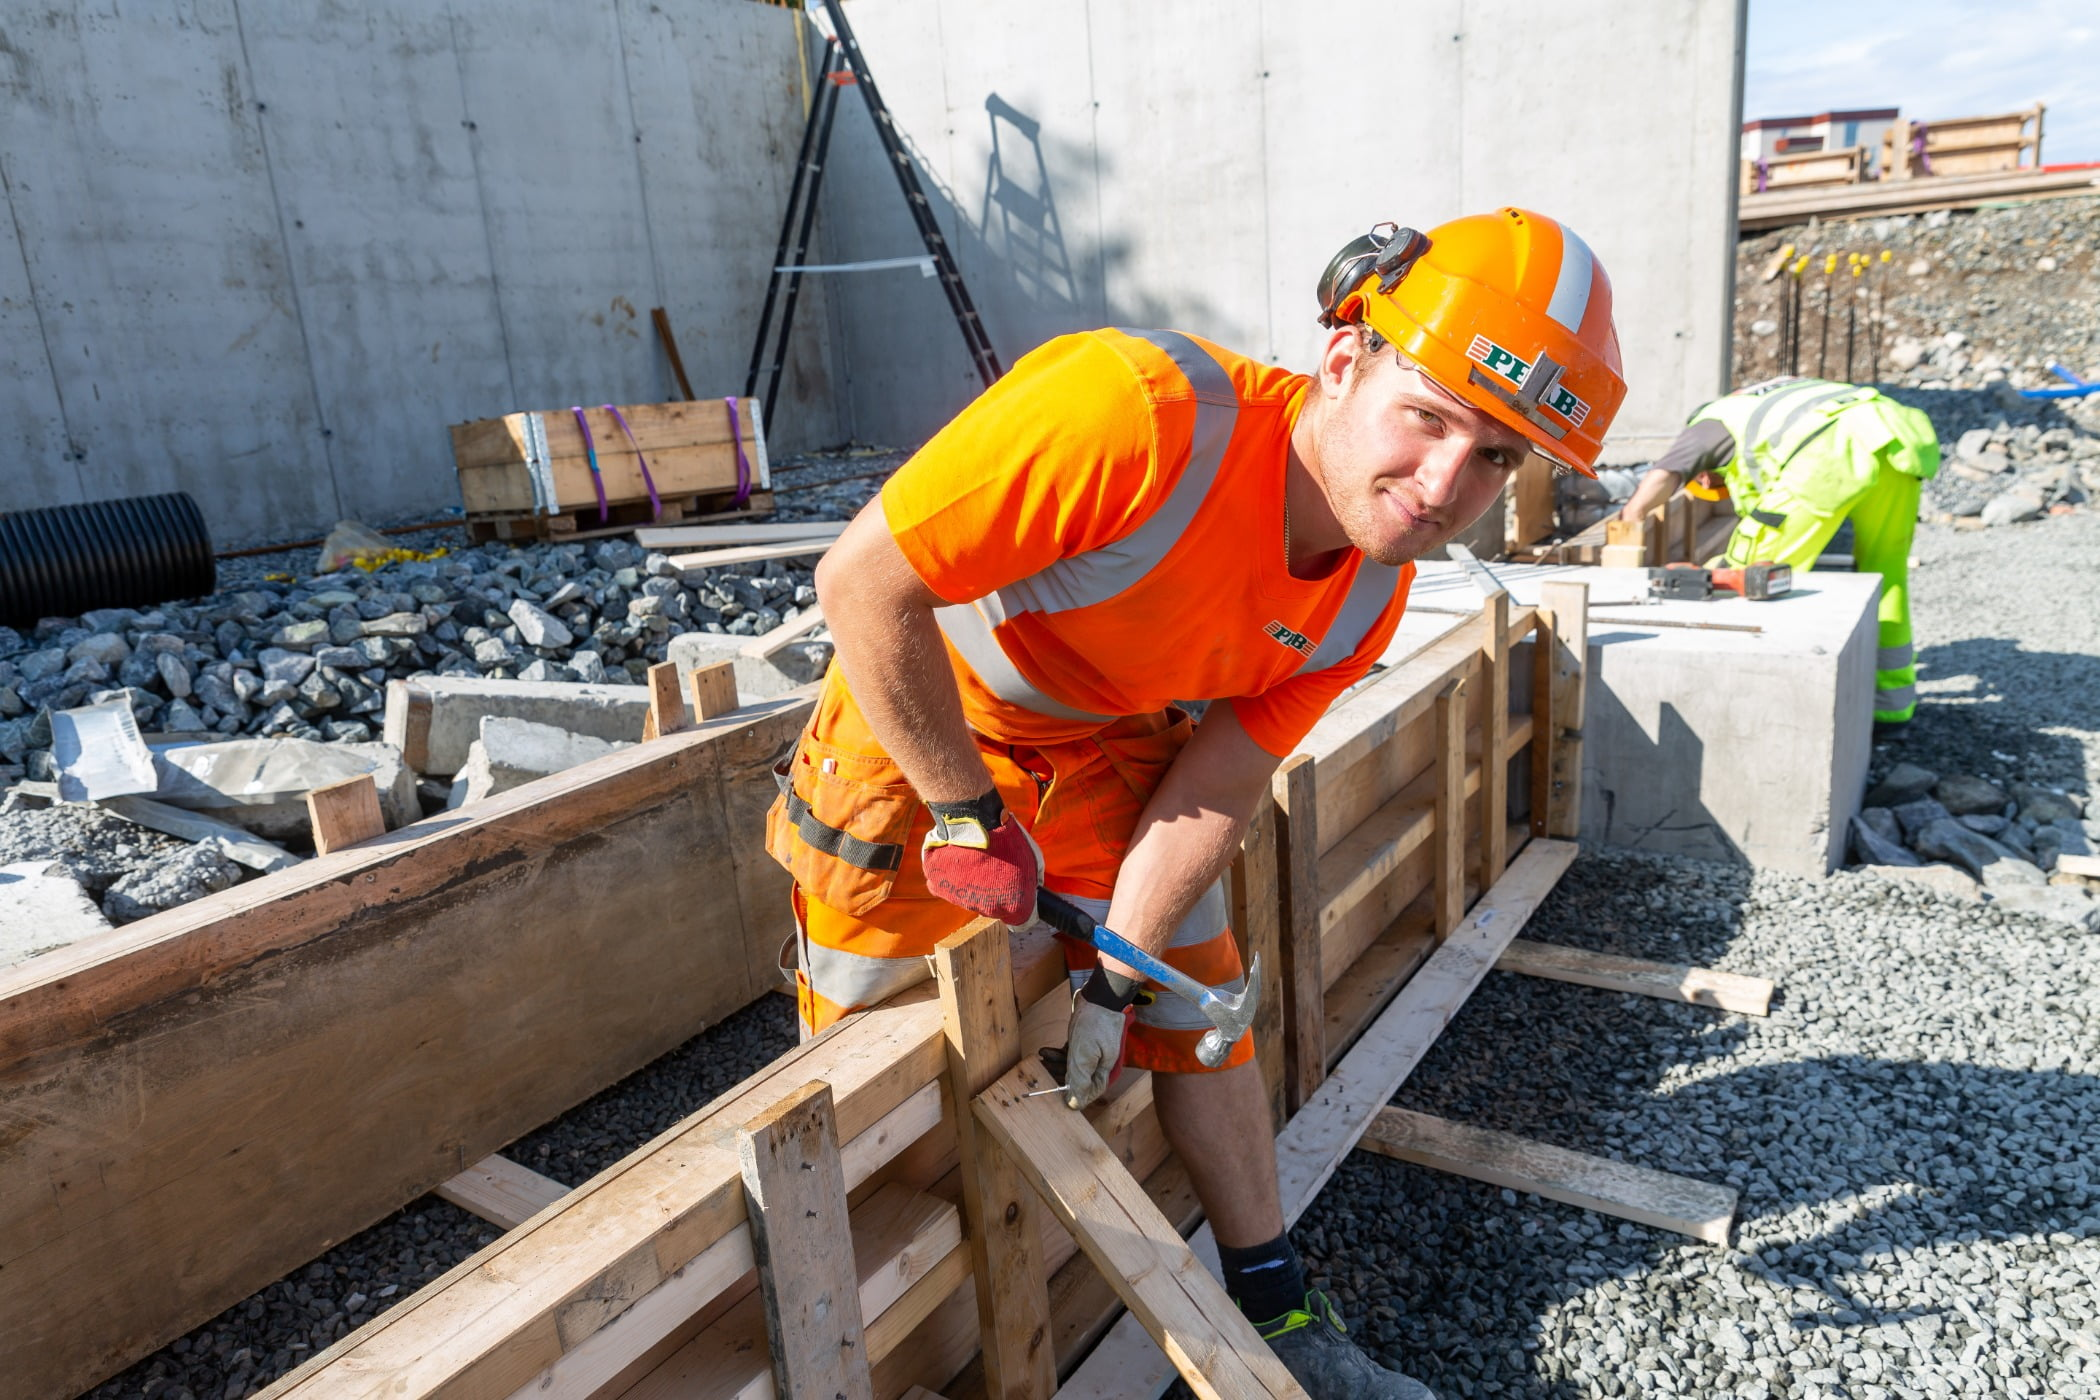 Hard hat, High-visibility clothing, Construction worker, Composite material, Tradesman, Workwear, Engineer, Helmet, Wood, Track